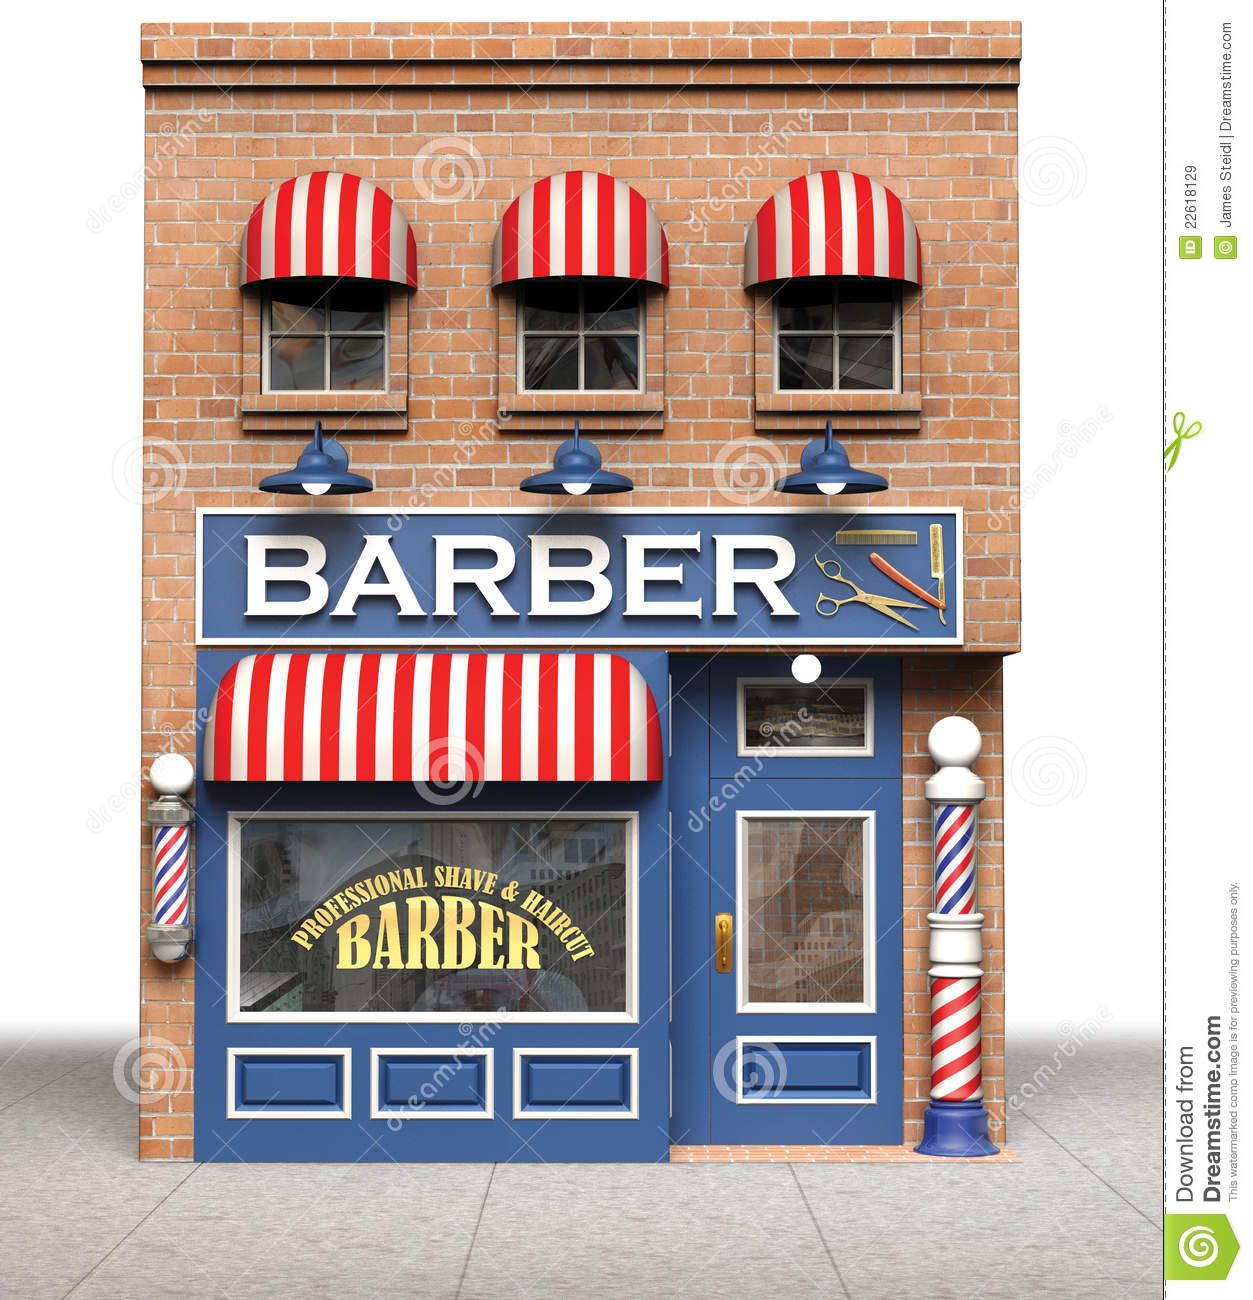 barber shop clipart google search stage set pinterest rh pinterest com barber shop clipart black and white barber shop clipart black and white